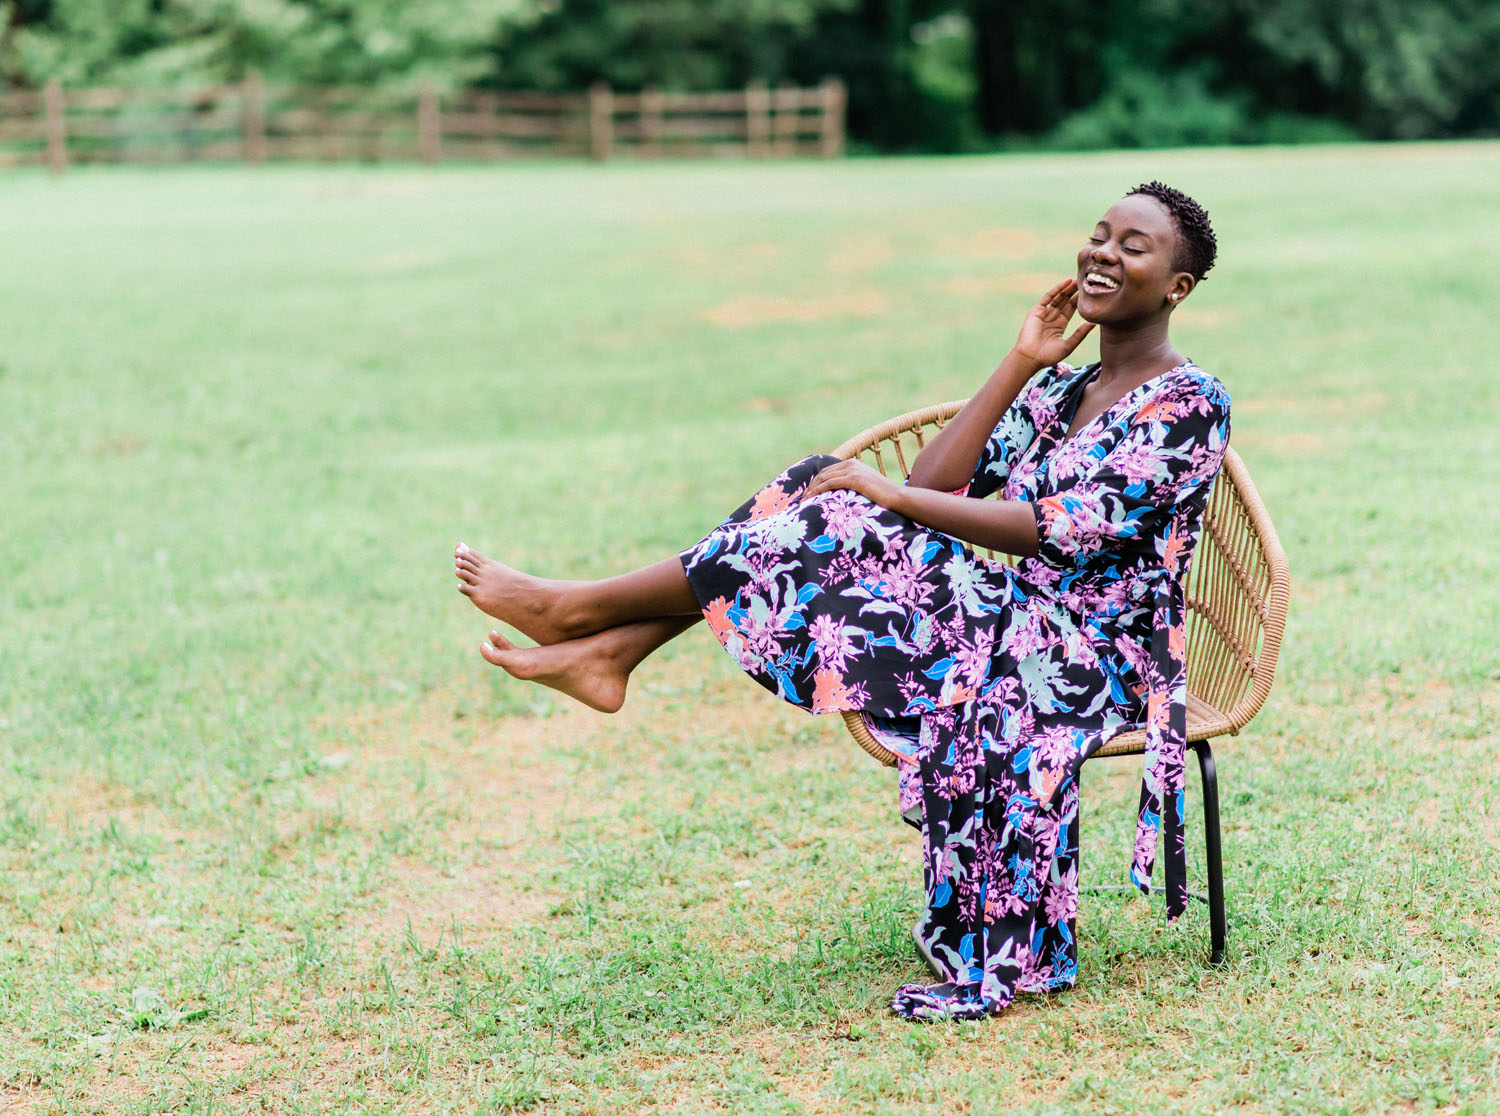 Black woman sits in chair, laughing in Fairmount Park in Philadelphia.